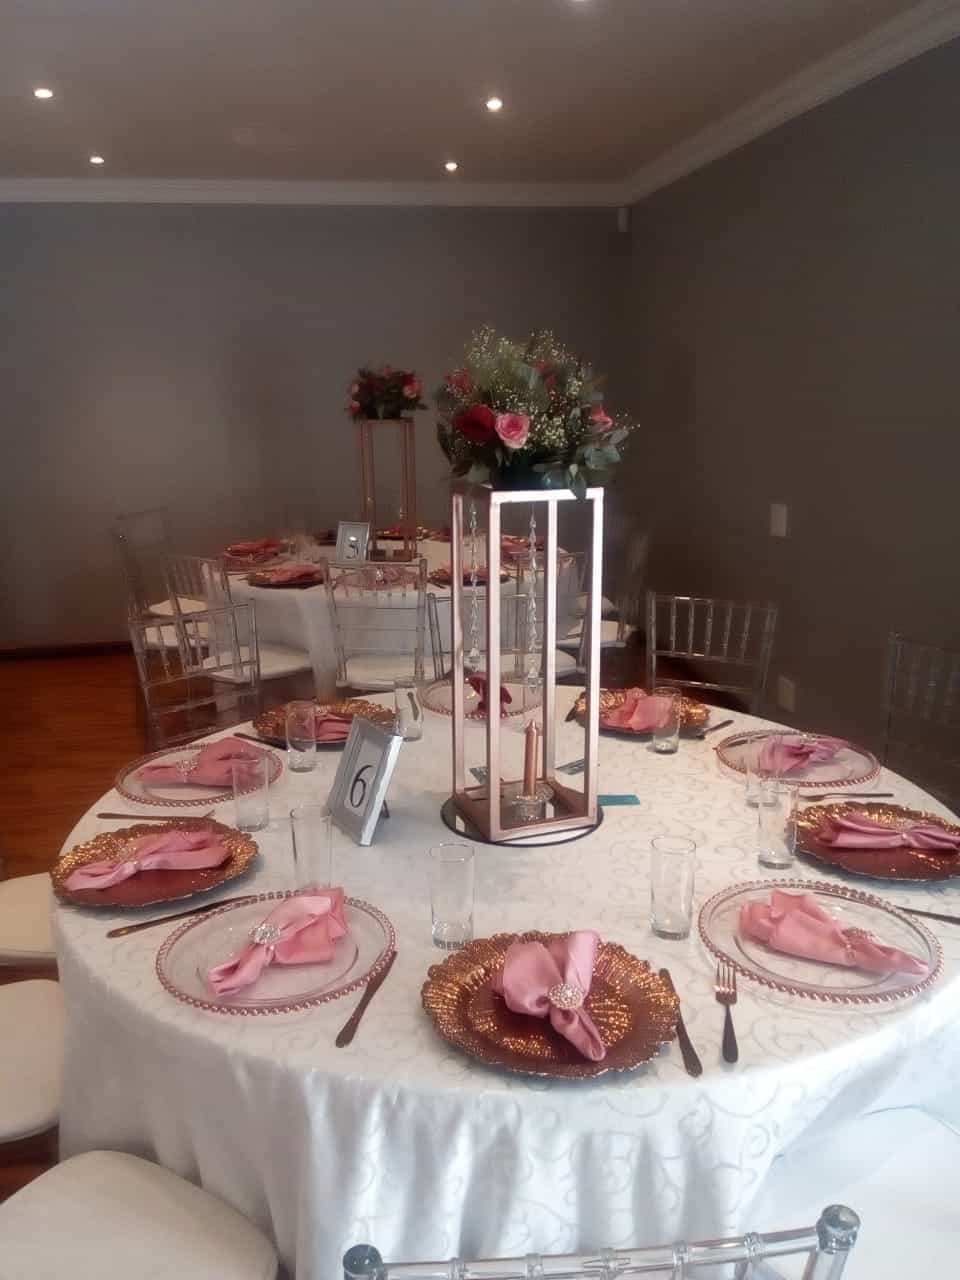 pink plates on a white table cloth